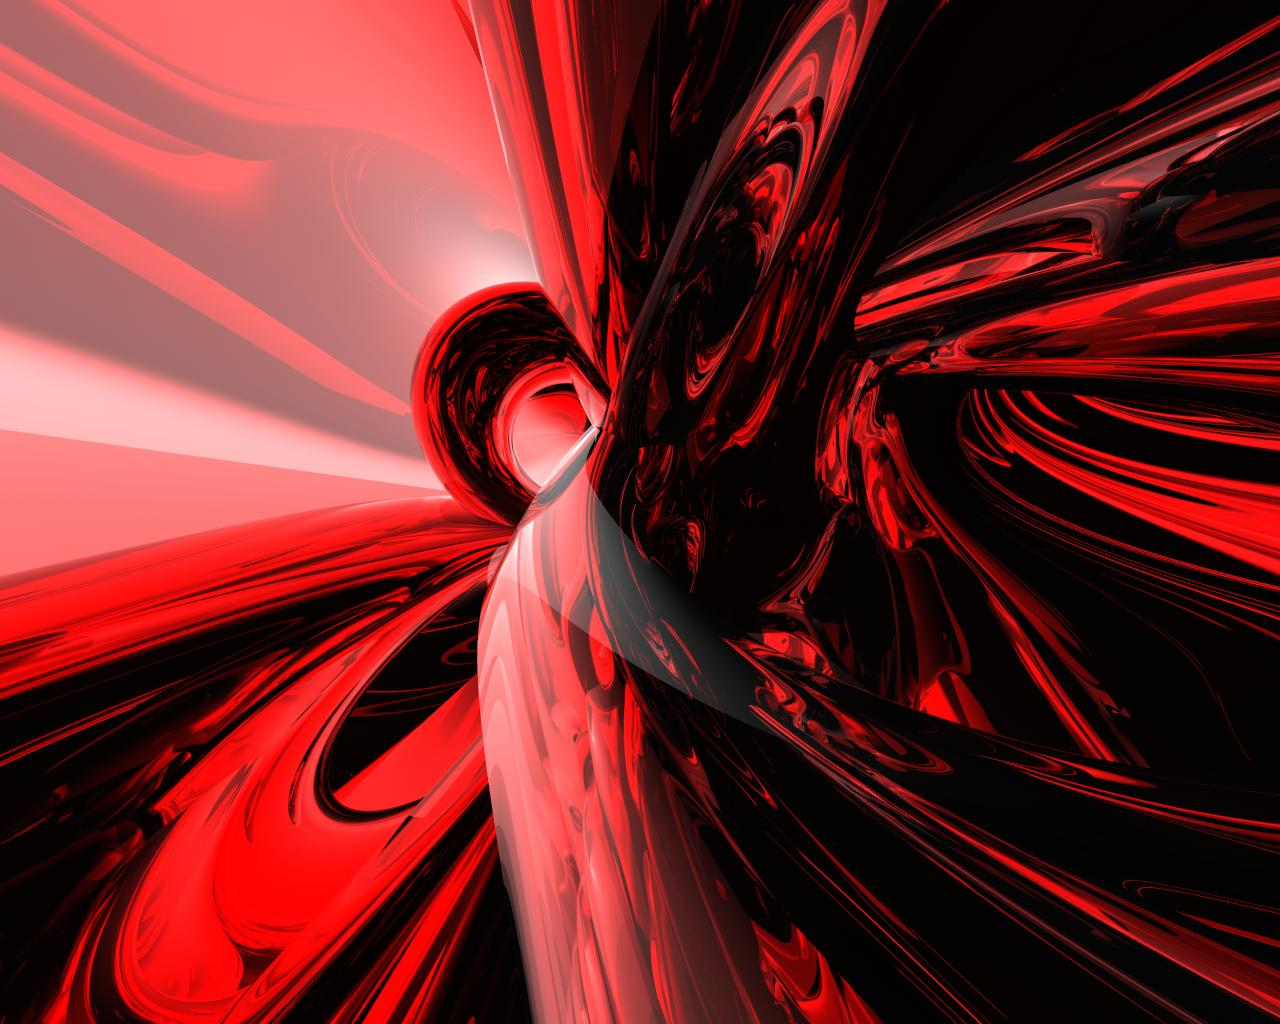 Black and red abstract wallpapers 71 wallpapers - Black red abstract wallpaper ...